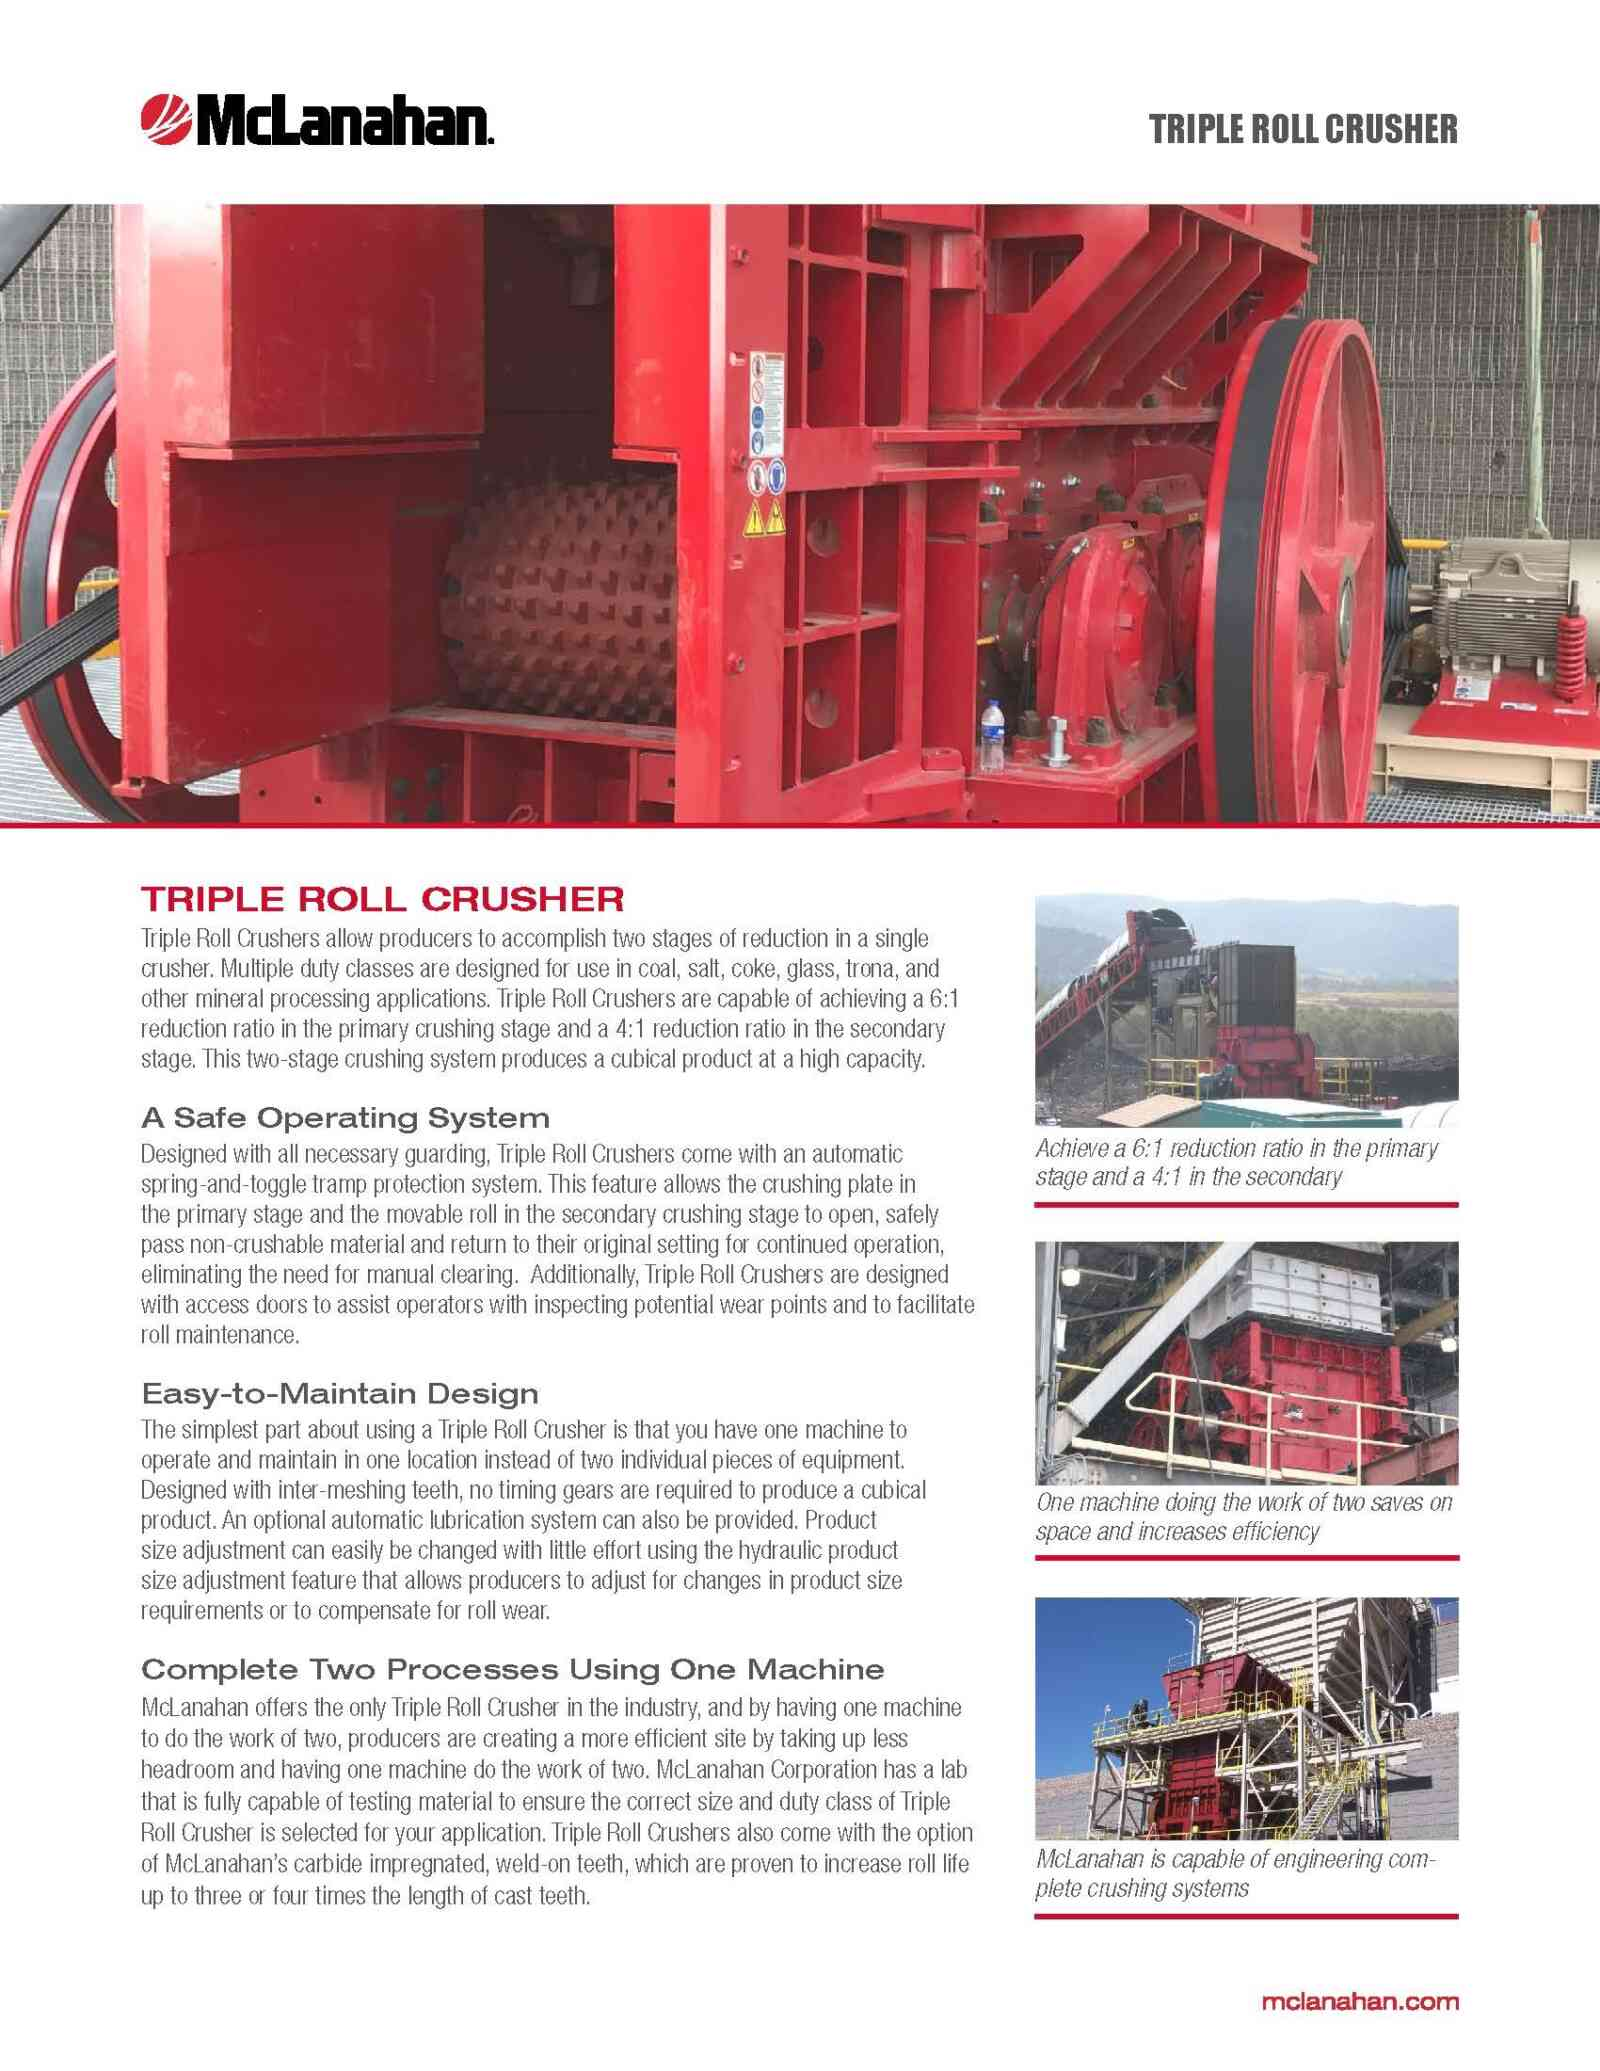 Triple Roll Crusher Brochure Image Page 1